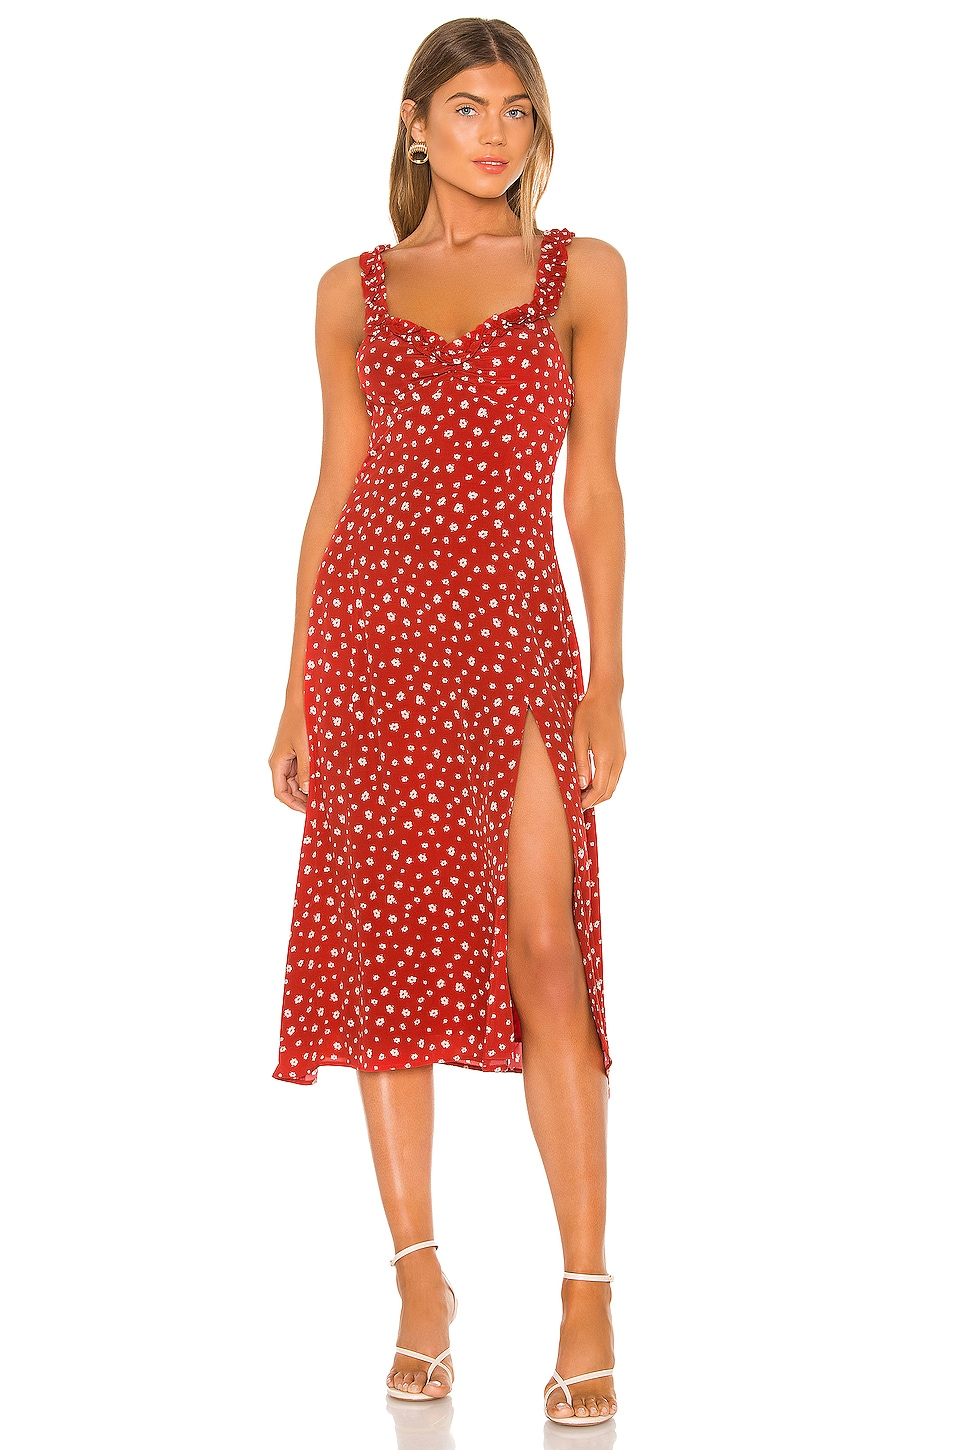 Privacy Please Mariela Midi Dress in Red Lola Floral